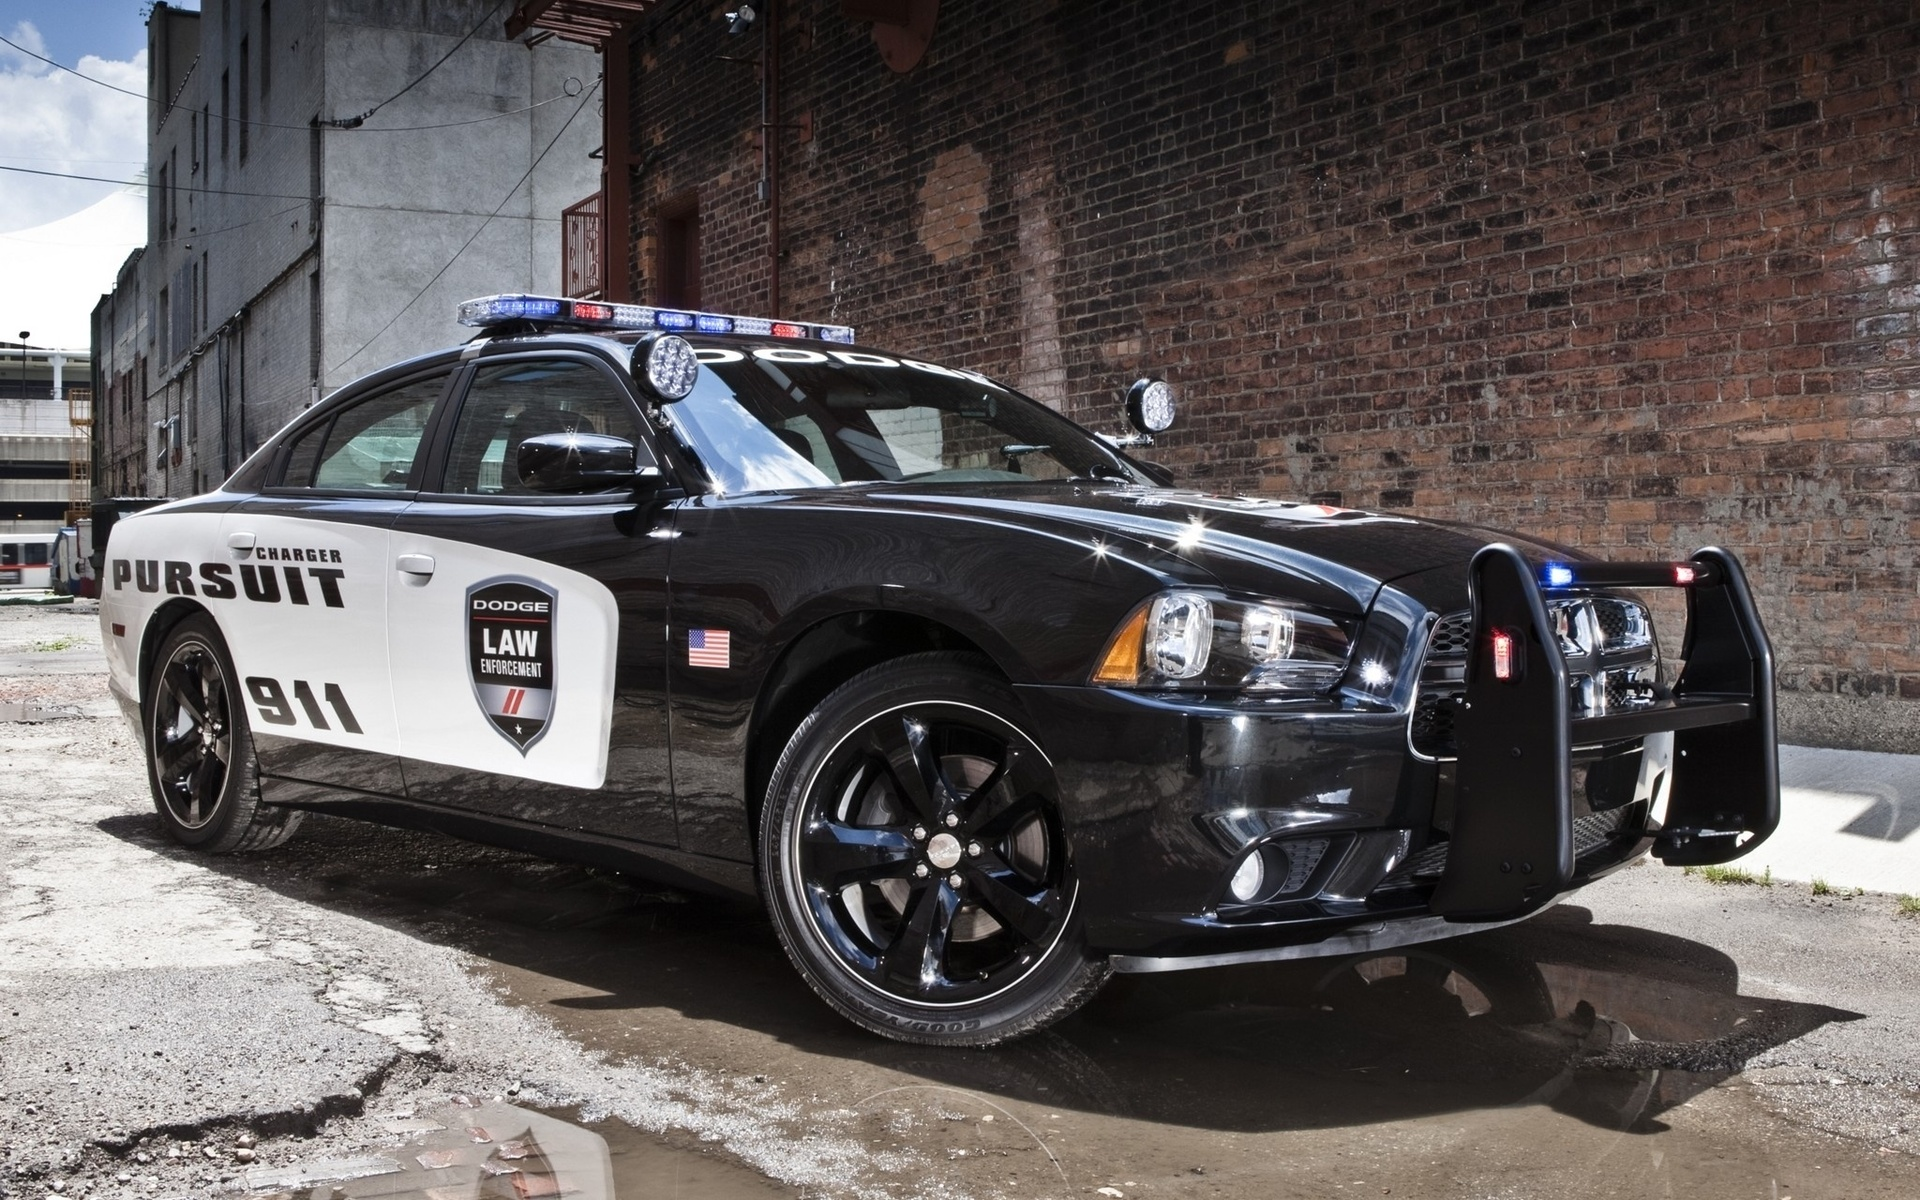 Cool Police Cars Wallpaper 1920x1200